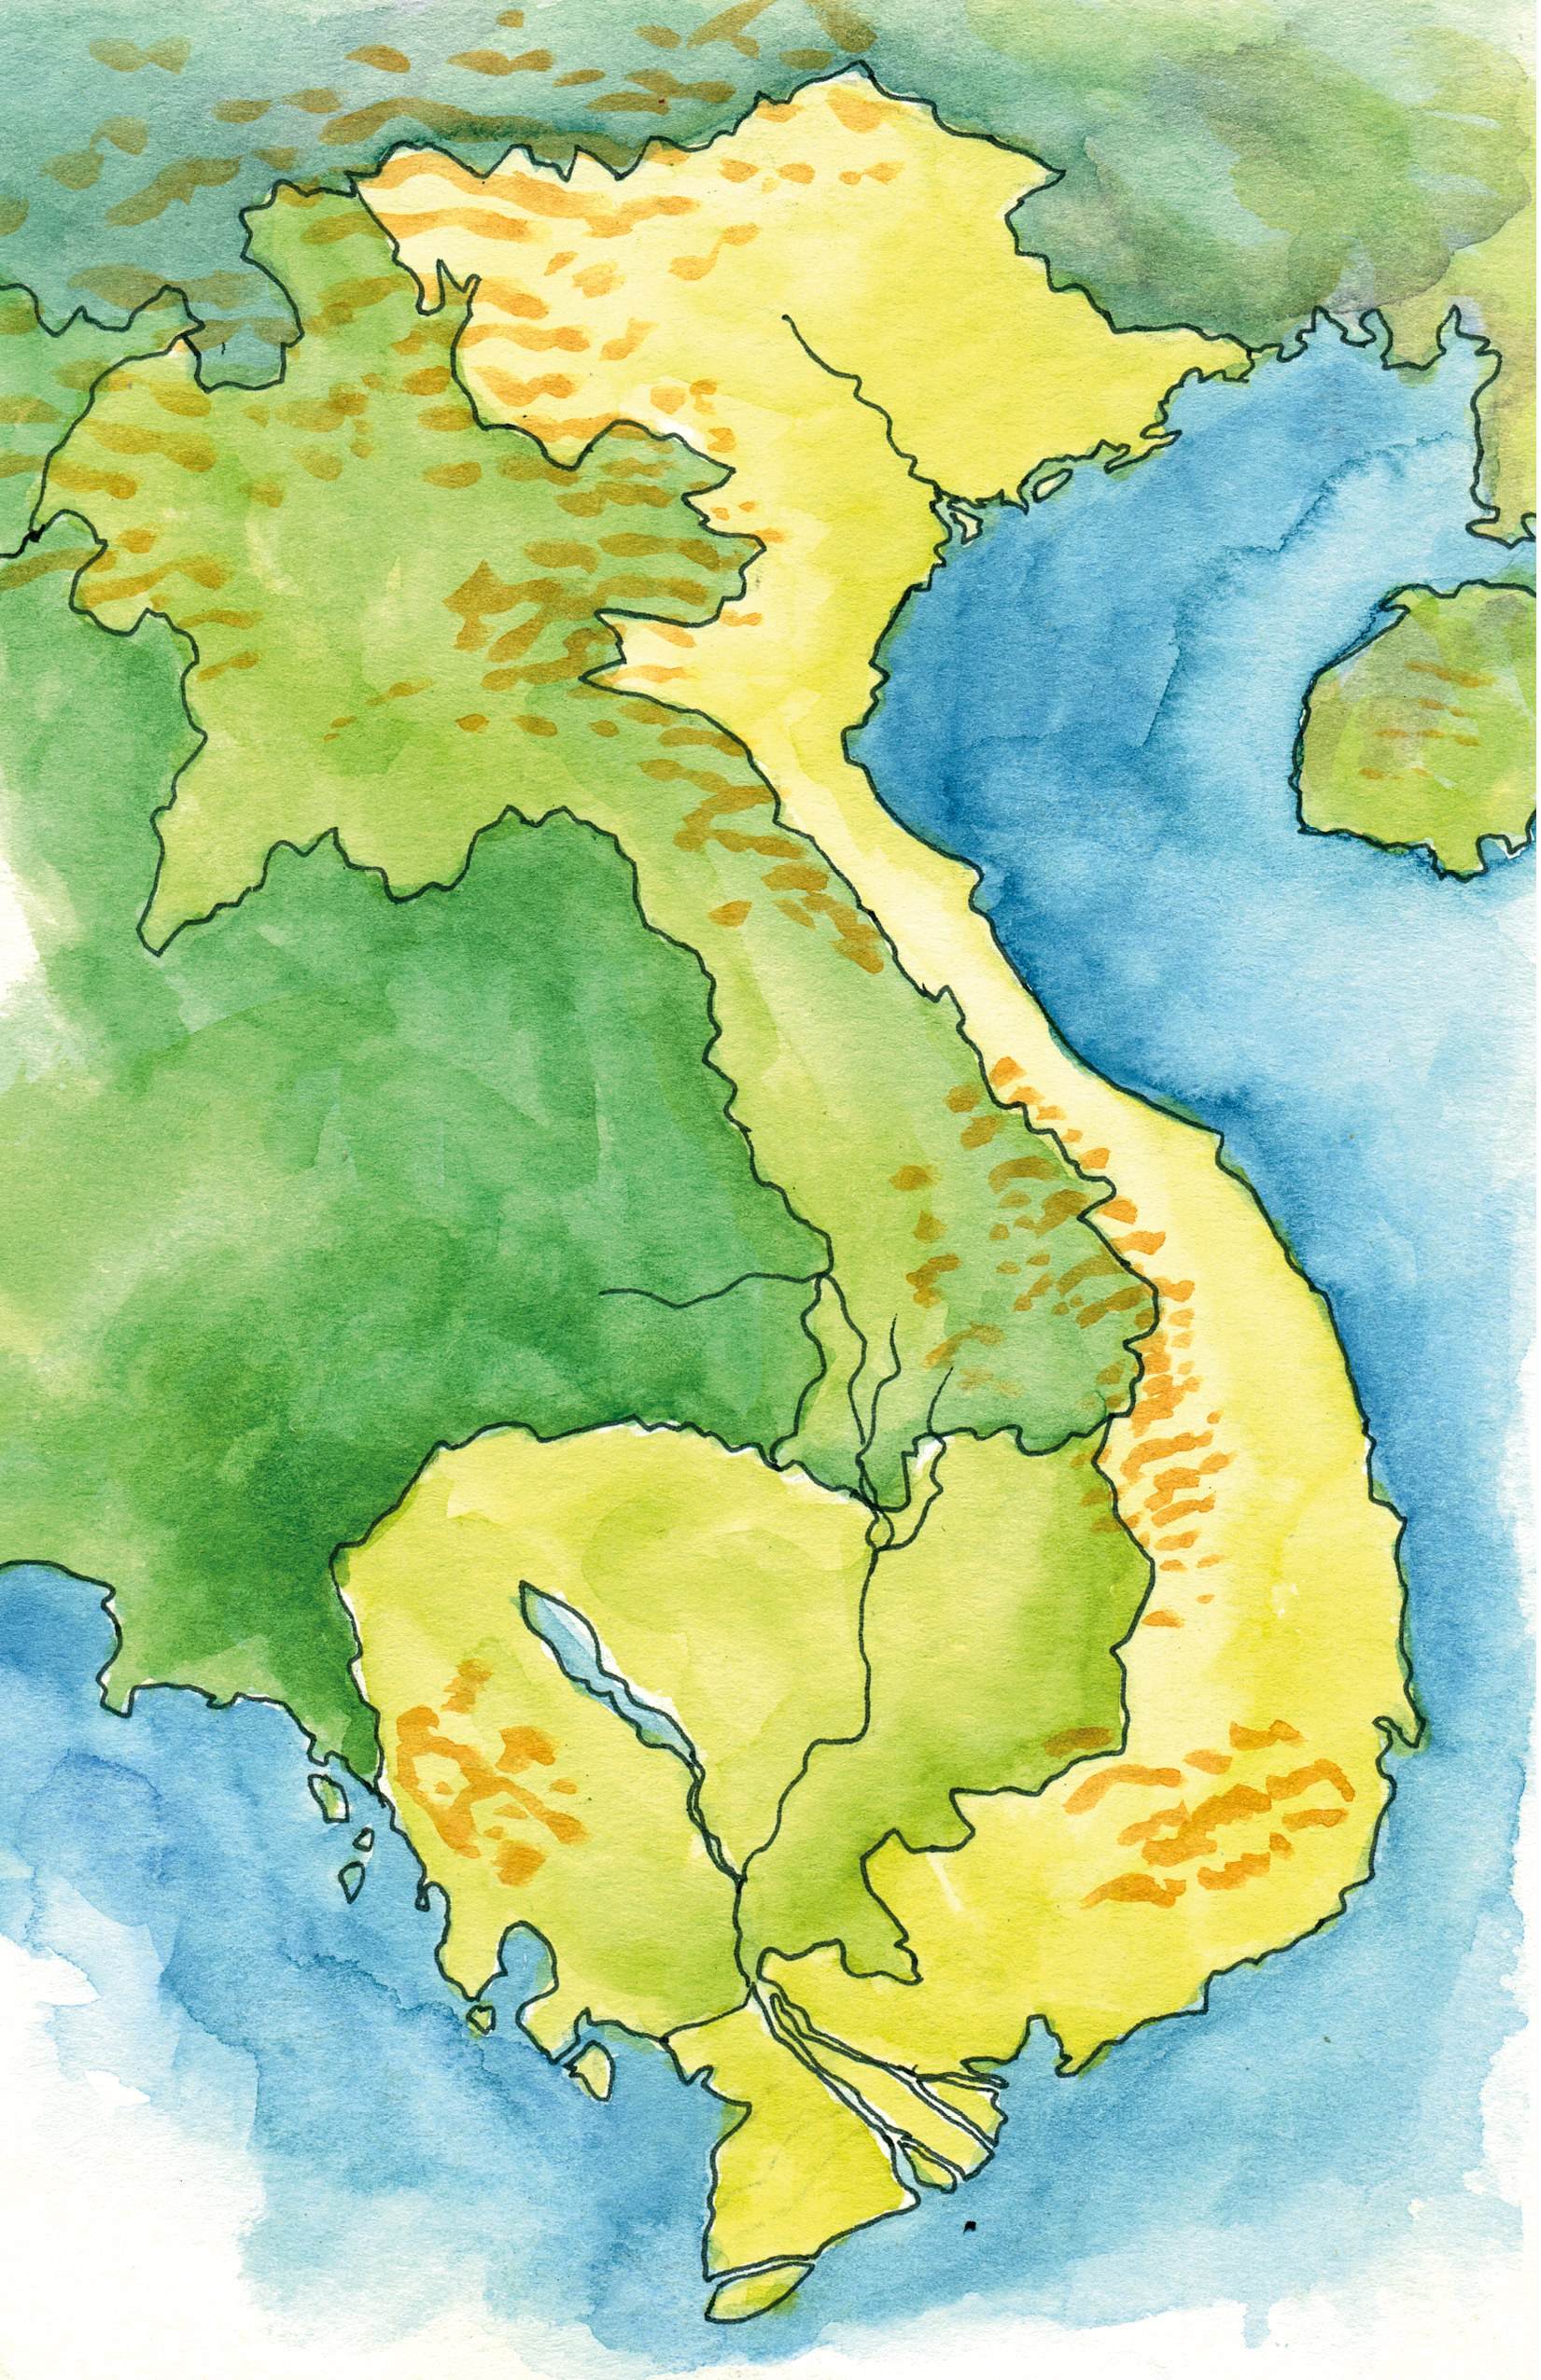 Vietnam and Cambodia Map - I created this map for my sketchbook and colored it in with watercolor. I haven't labeled the places yet because I'm not sure exactly where we are going. I plan to fill that information in as I travel. You can see that I highlighted Vietnam and Cambodia, the two countries I'll be visiting. I also included some of the basic geography such as where the mountains are, and some of the rivers near where I am going.